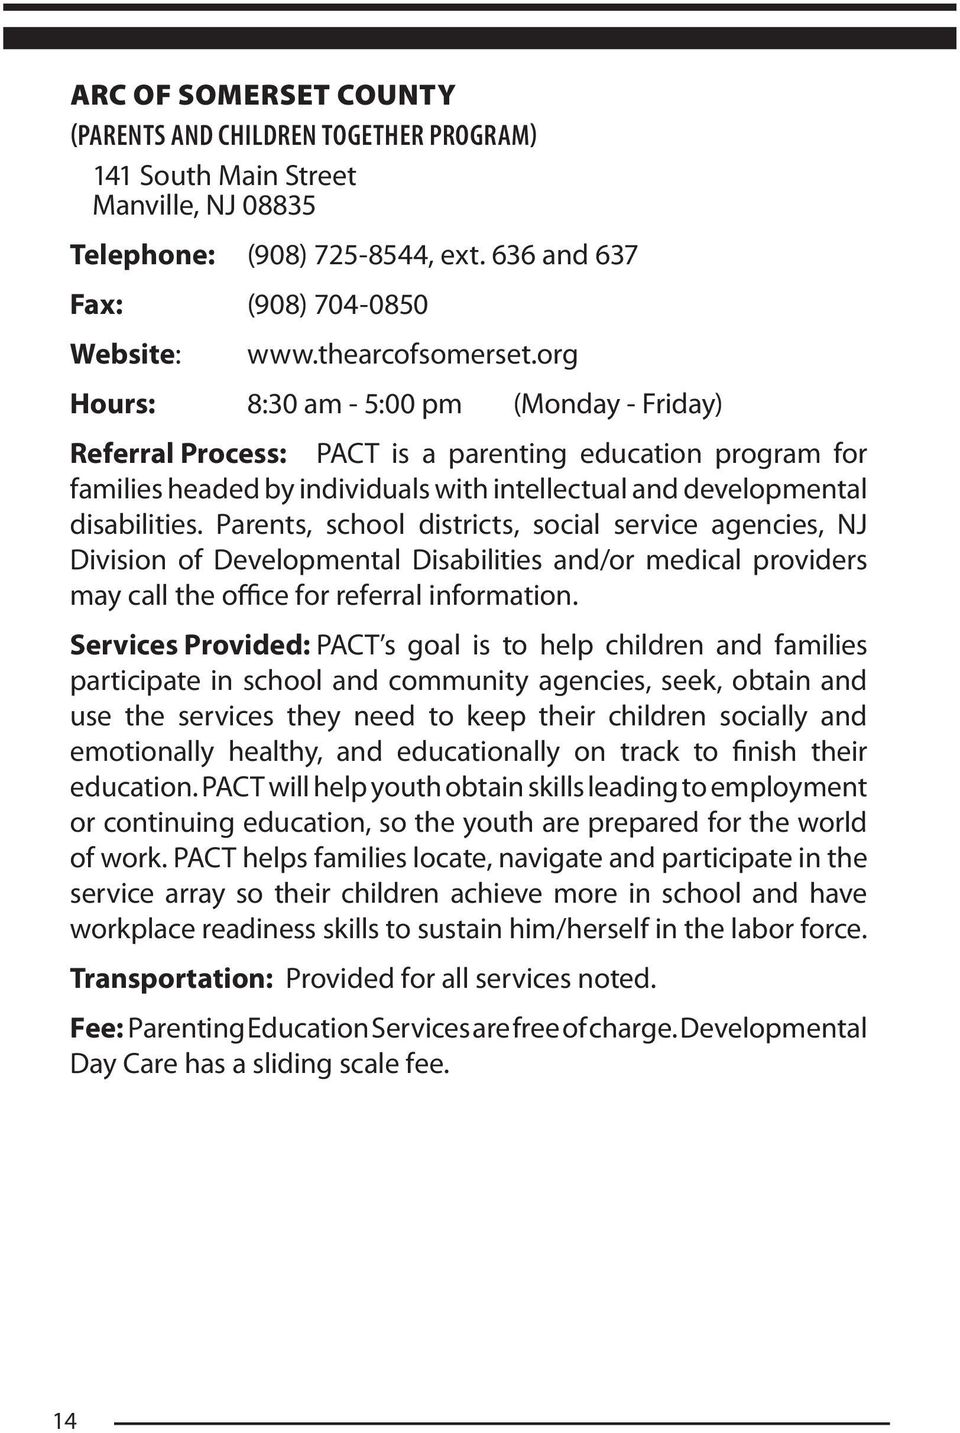 Parents, school districts, social service agencies, NJ Division of Developmental Disabilities and/or medical providers may call the office for referral information.